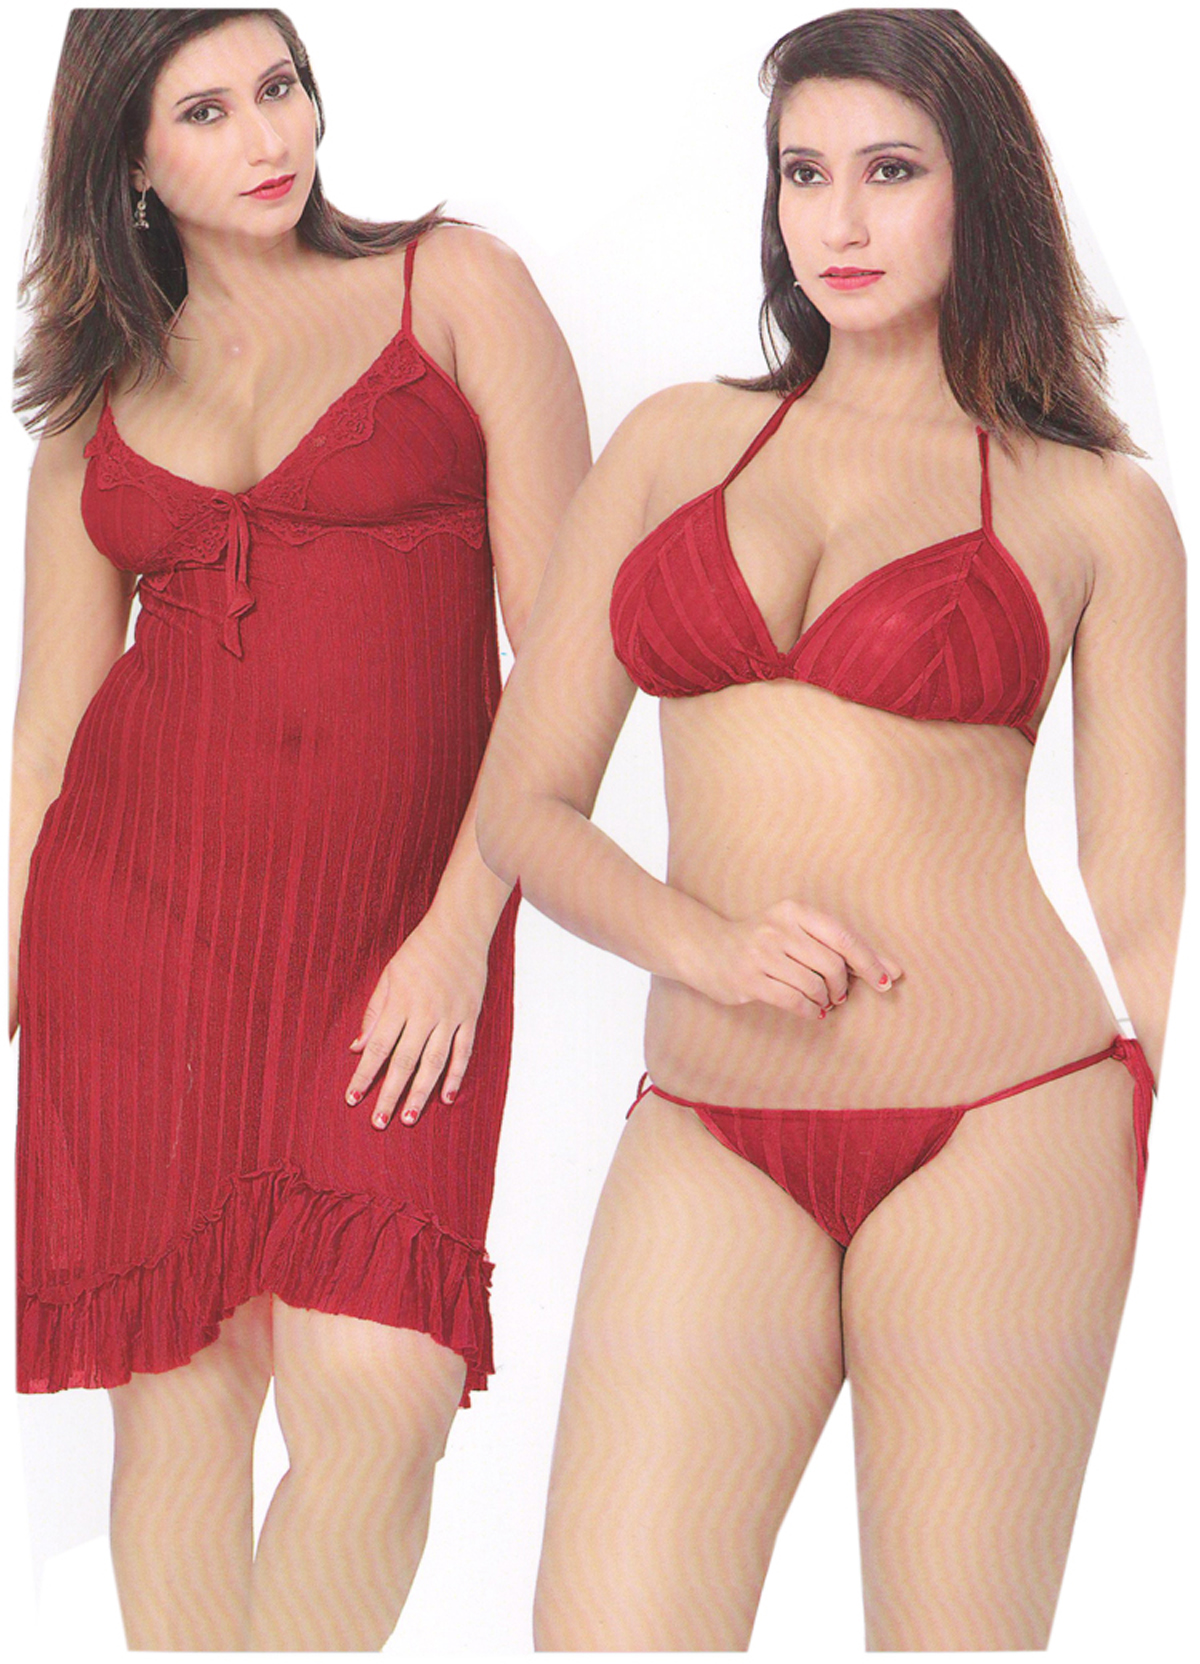 0773f9d81c53 SEXY SLEEPWEAR HOT NIGHTY FOR WOMEN HONEYMOON NIGHTWEAR – Global Trendzs